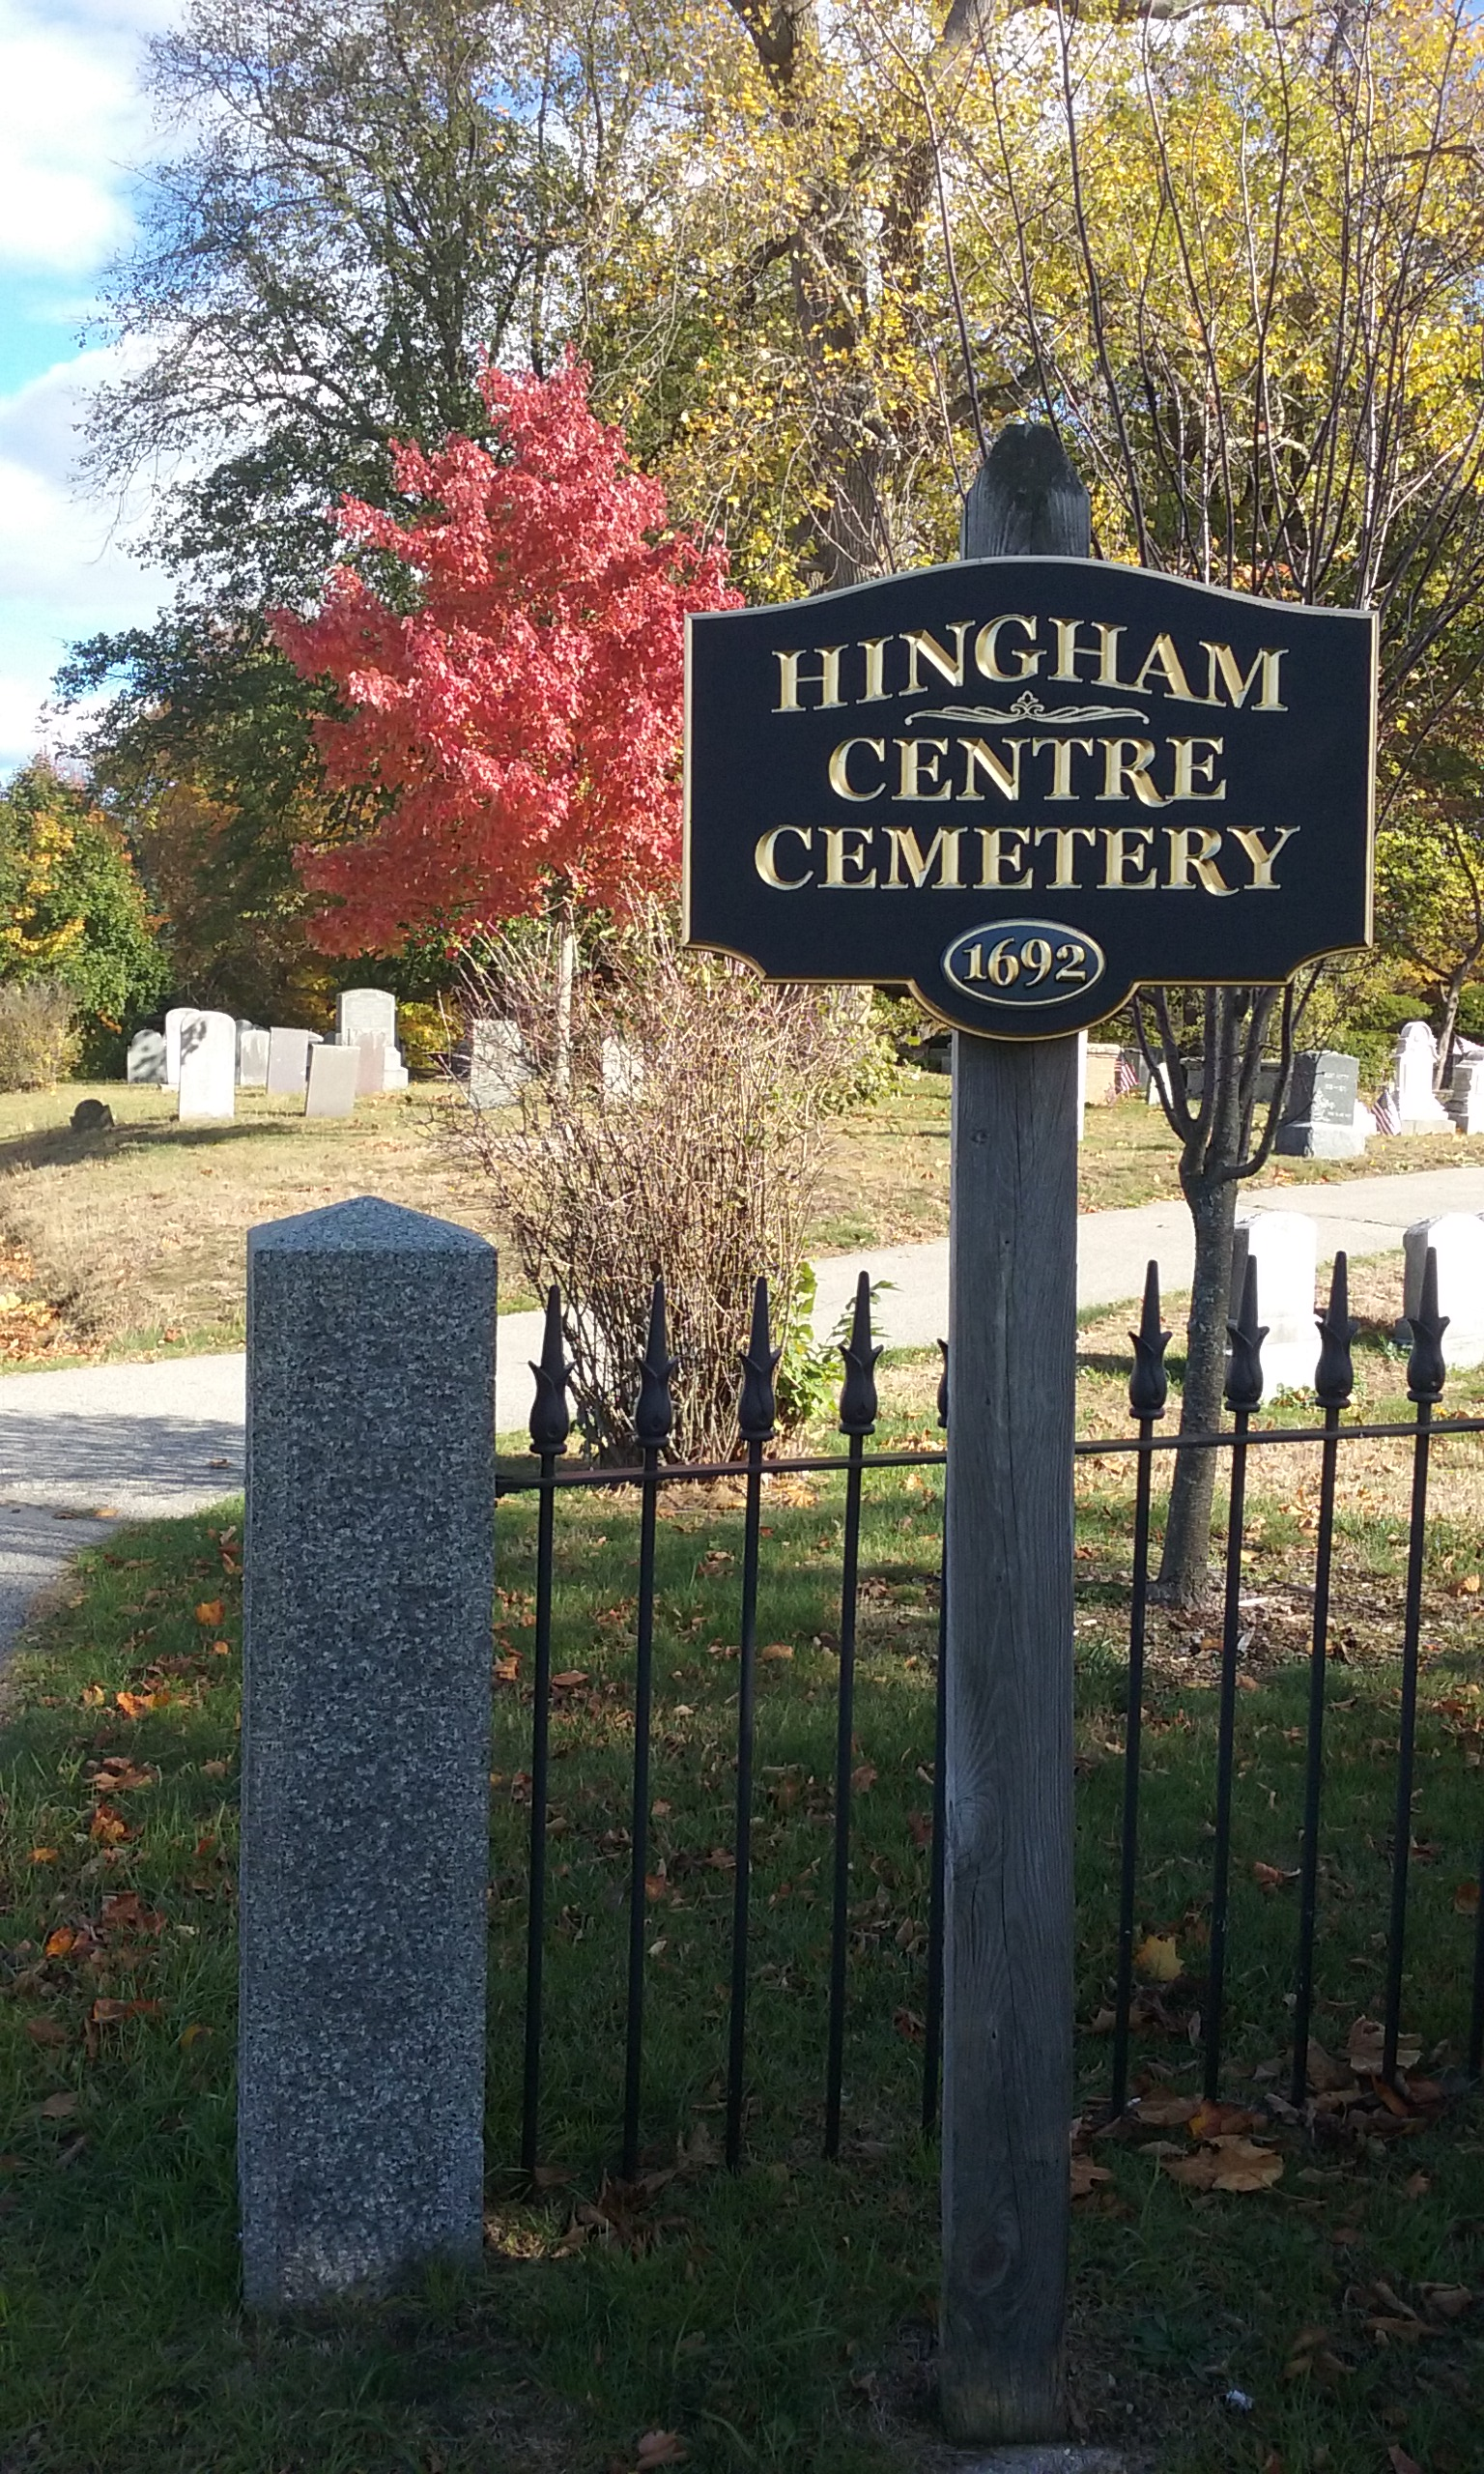 Hingham Center Cemetery